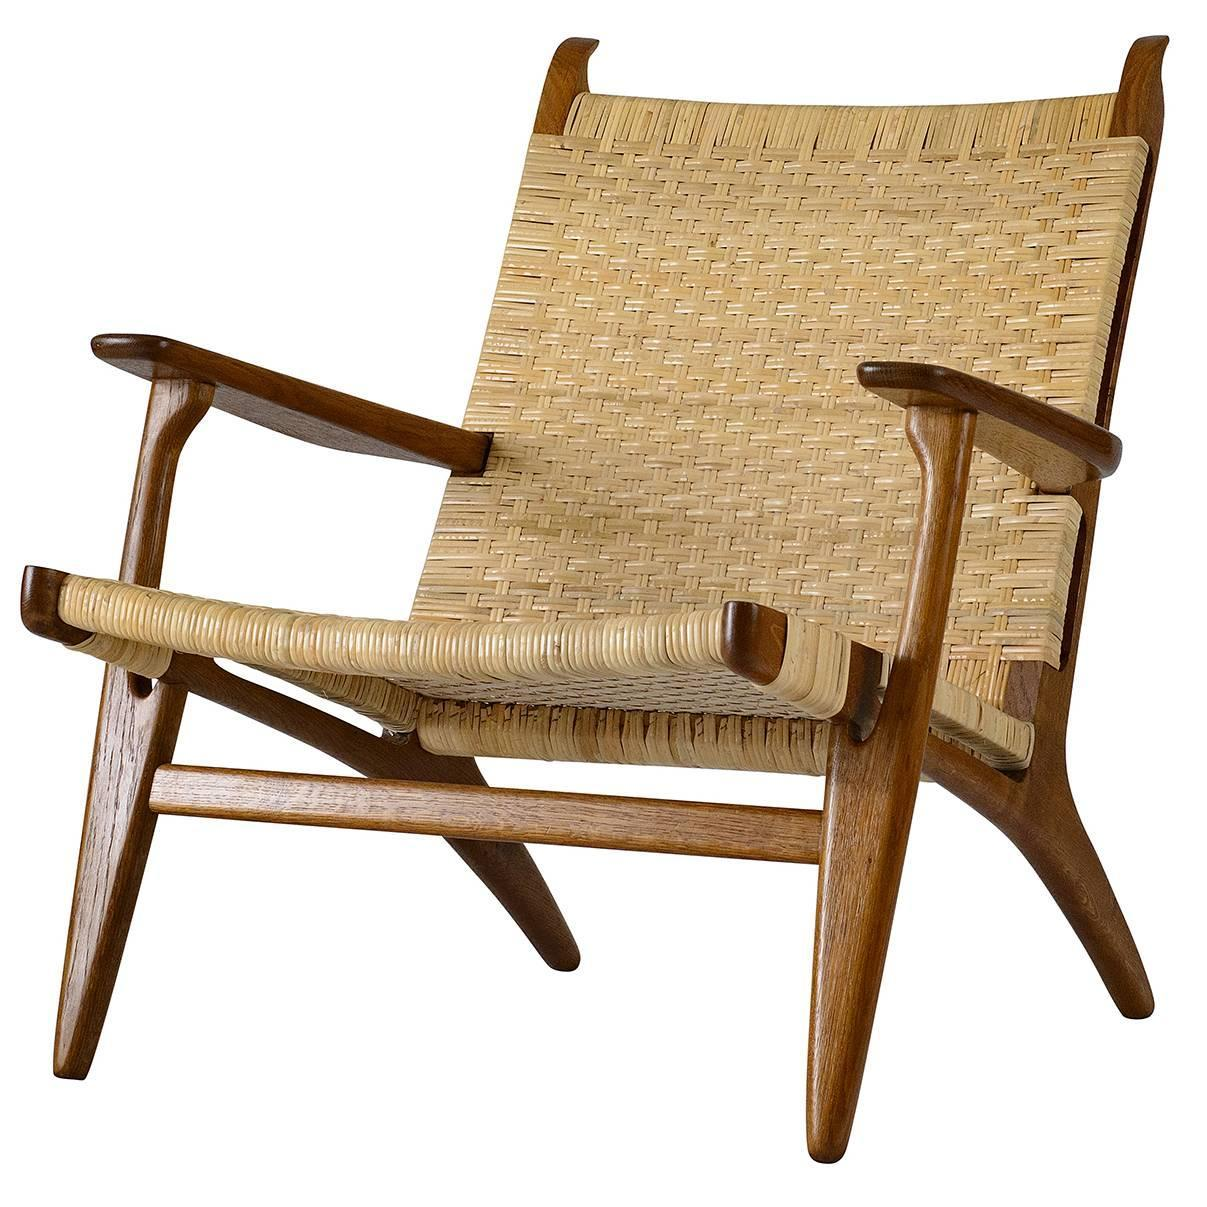 hans wegner the chair white folding chairs for weddings ch 27 lounge sale at 1stdibs